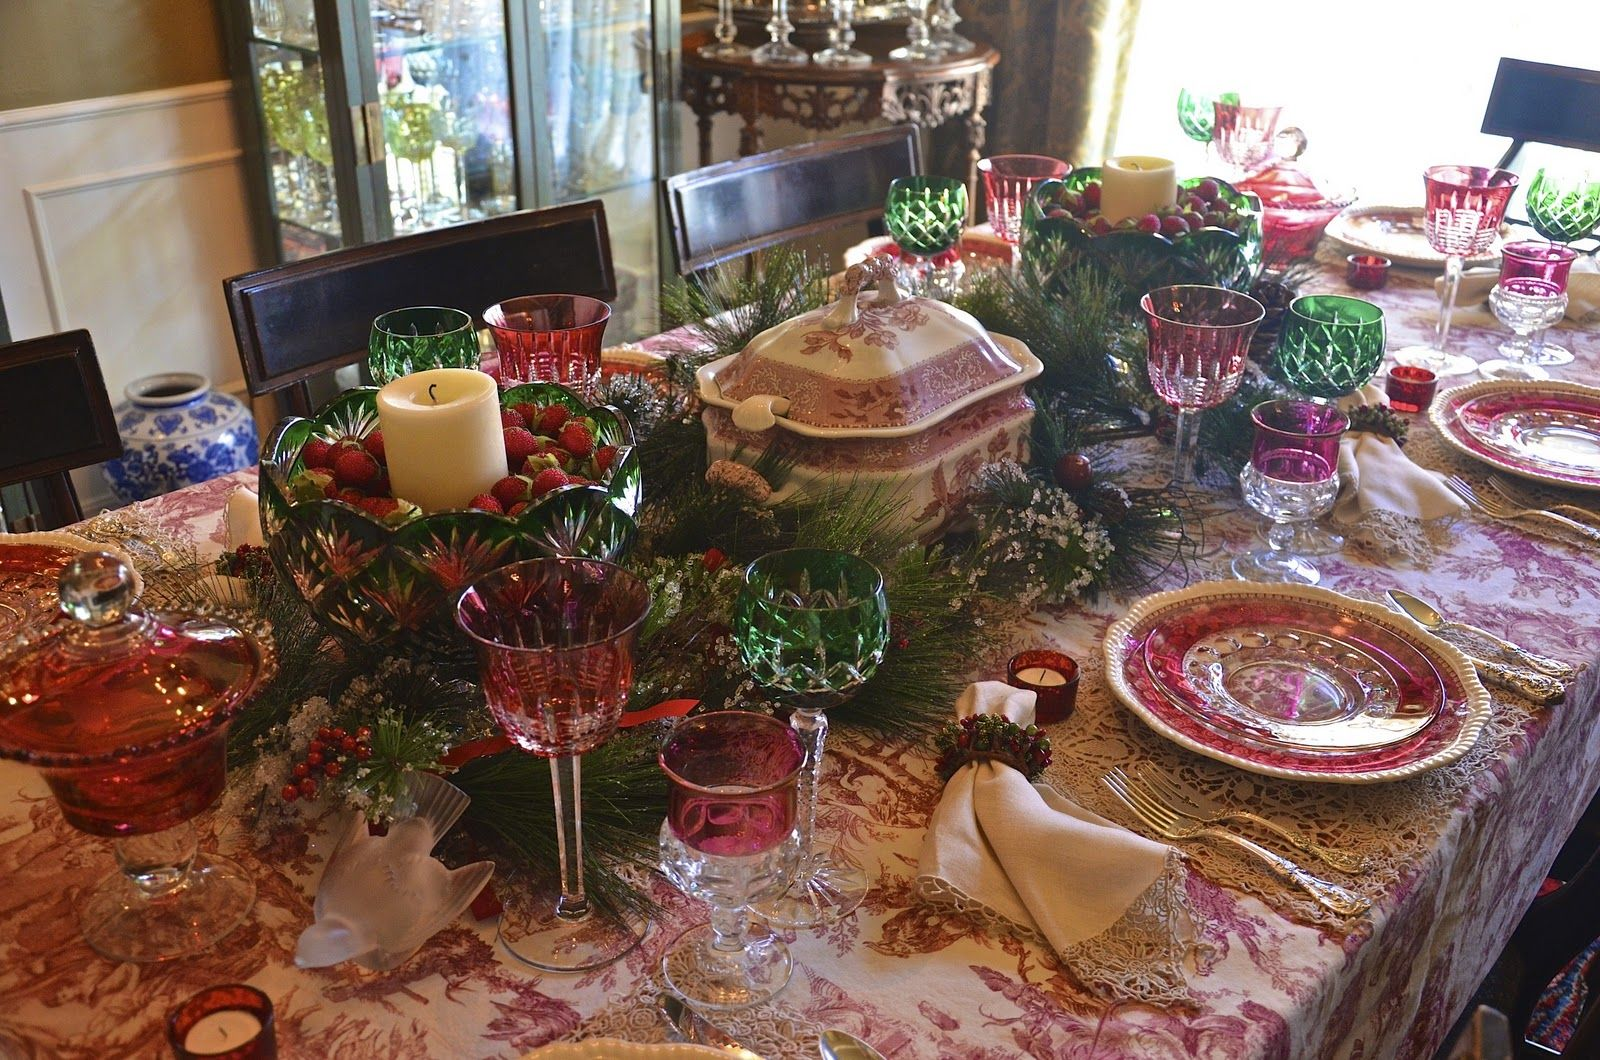 Williams Sonoma Tablecloths | Was Eager To Use The Williams Sonoma Toile  Tablecloth, A Recent EBay ... | Tablescapes | Pinterest | Toile,  Tablescapes And ...